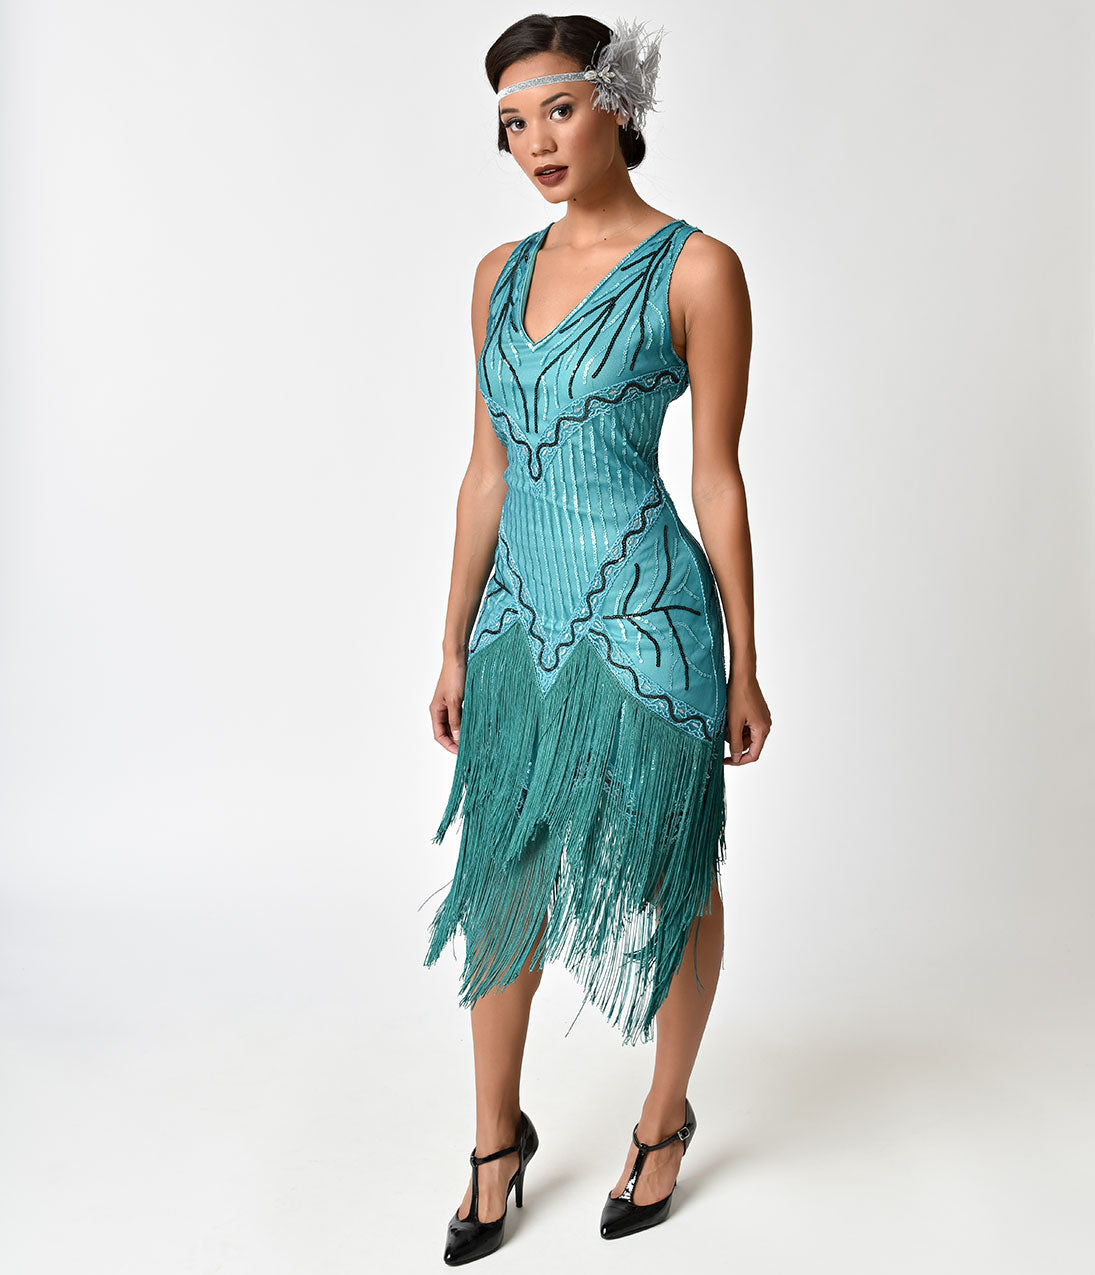 1920s Style Dresses, Flapper Dresses 1920S Style Teal Beaded  Fringe Fosse Flapper Dress $74.00 AT vintagedancer.com